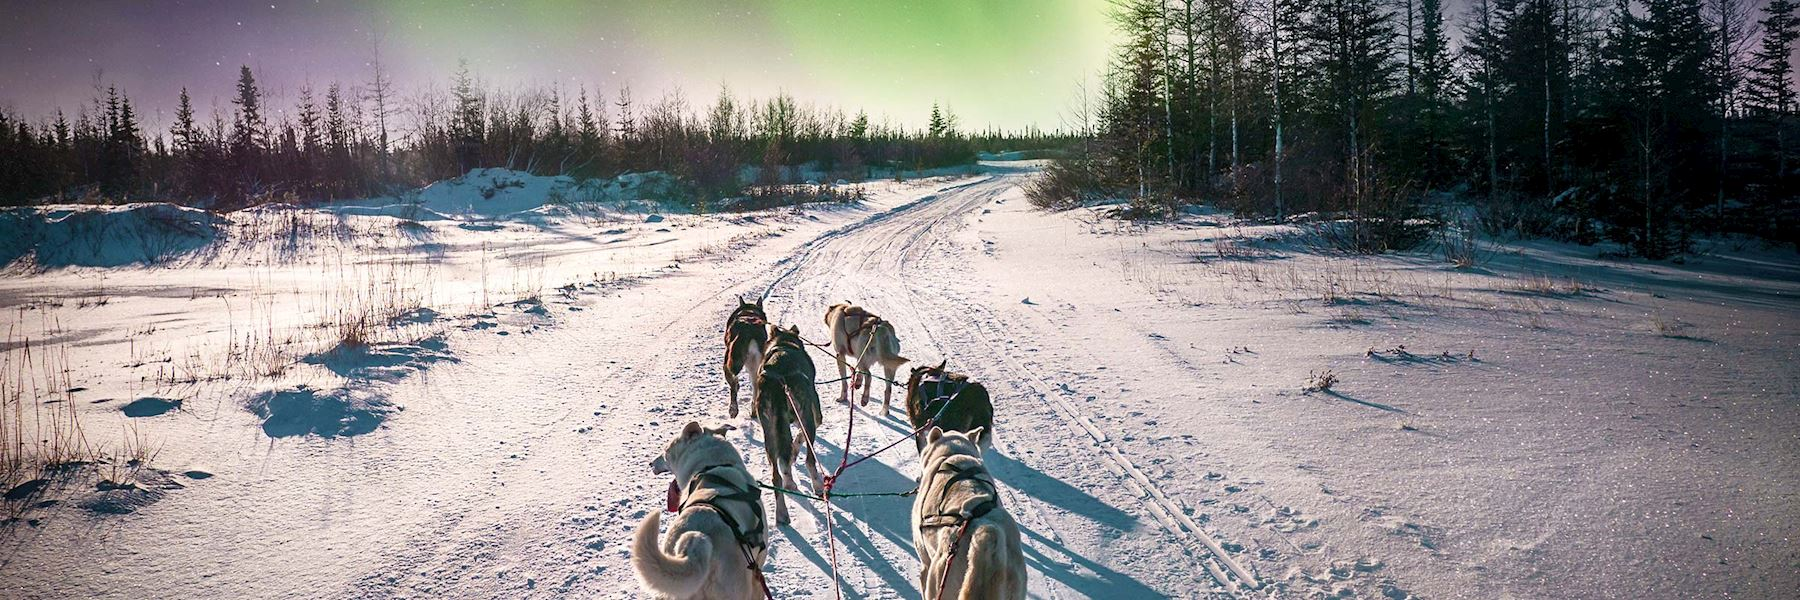 Things to do in Canada in winter